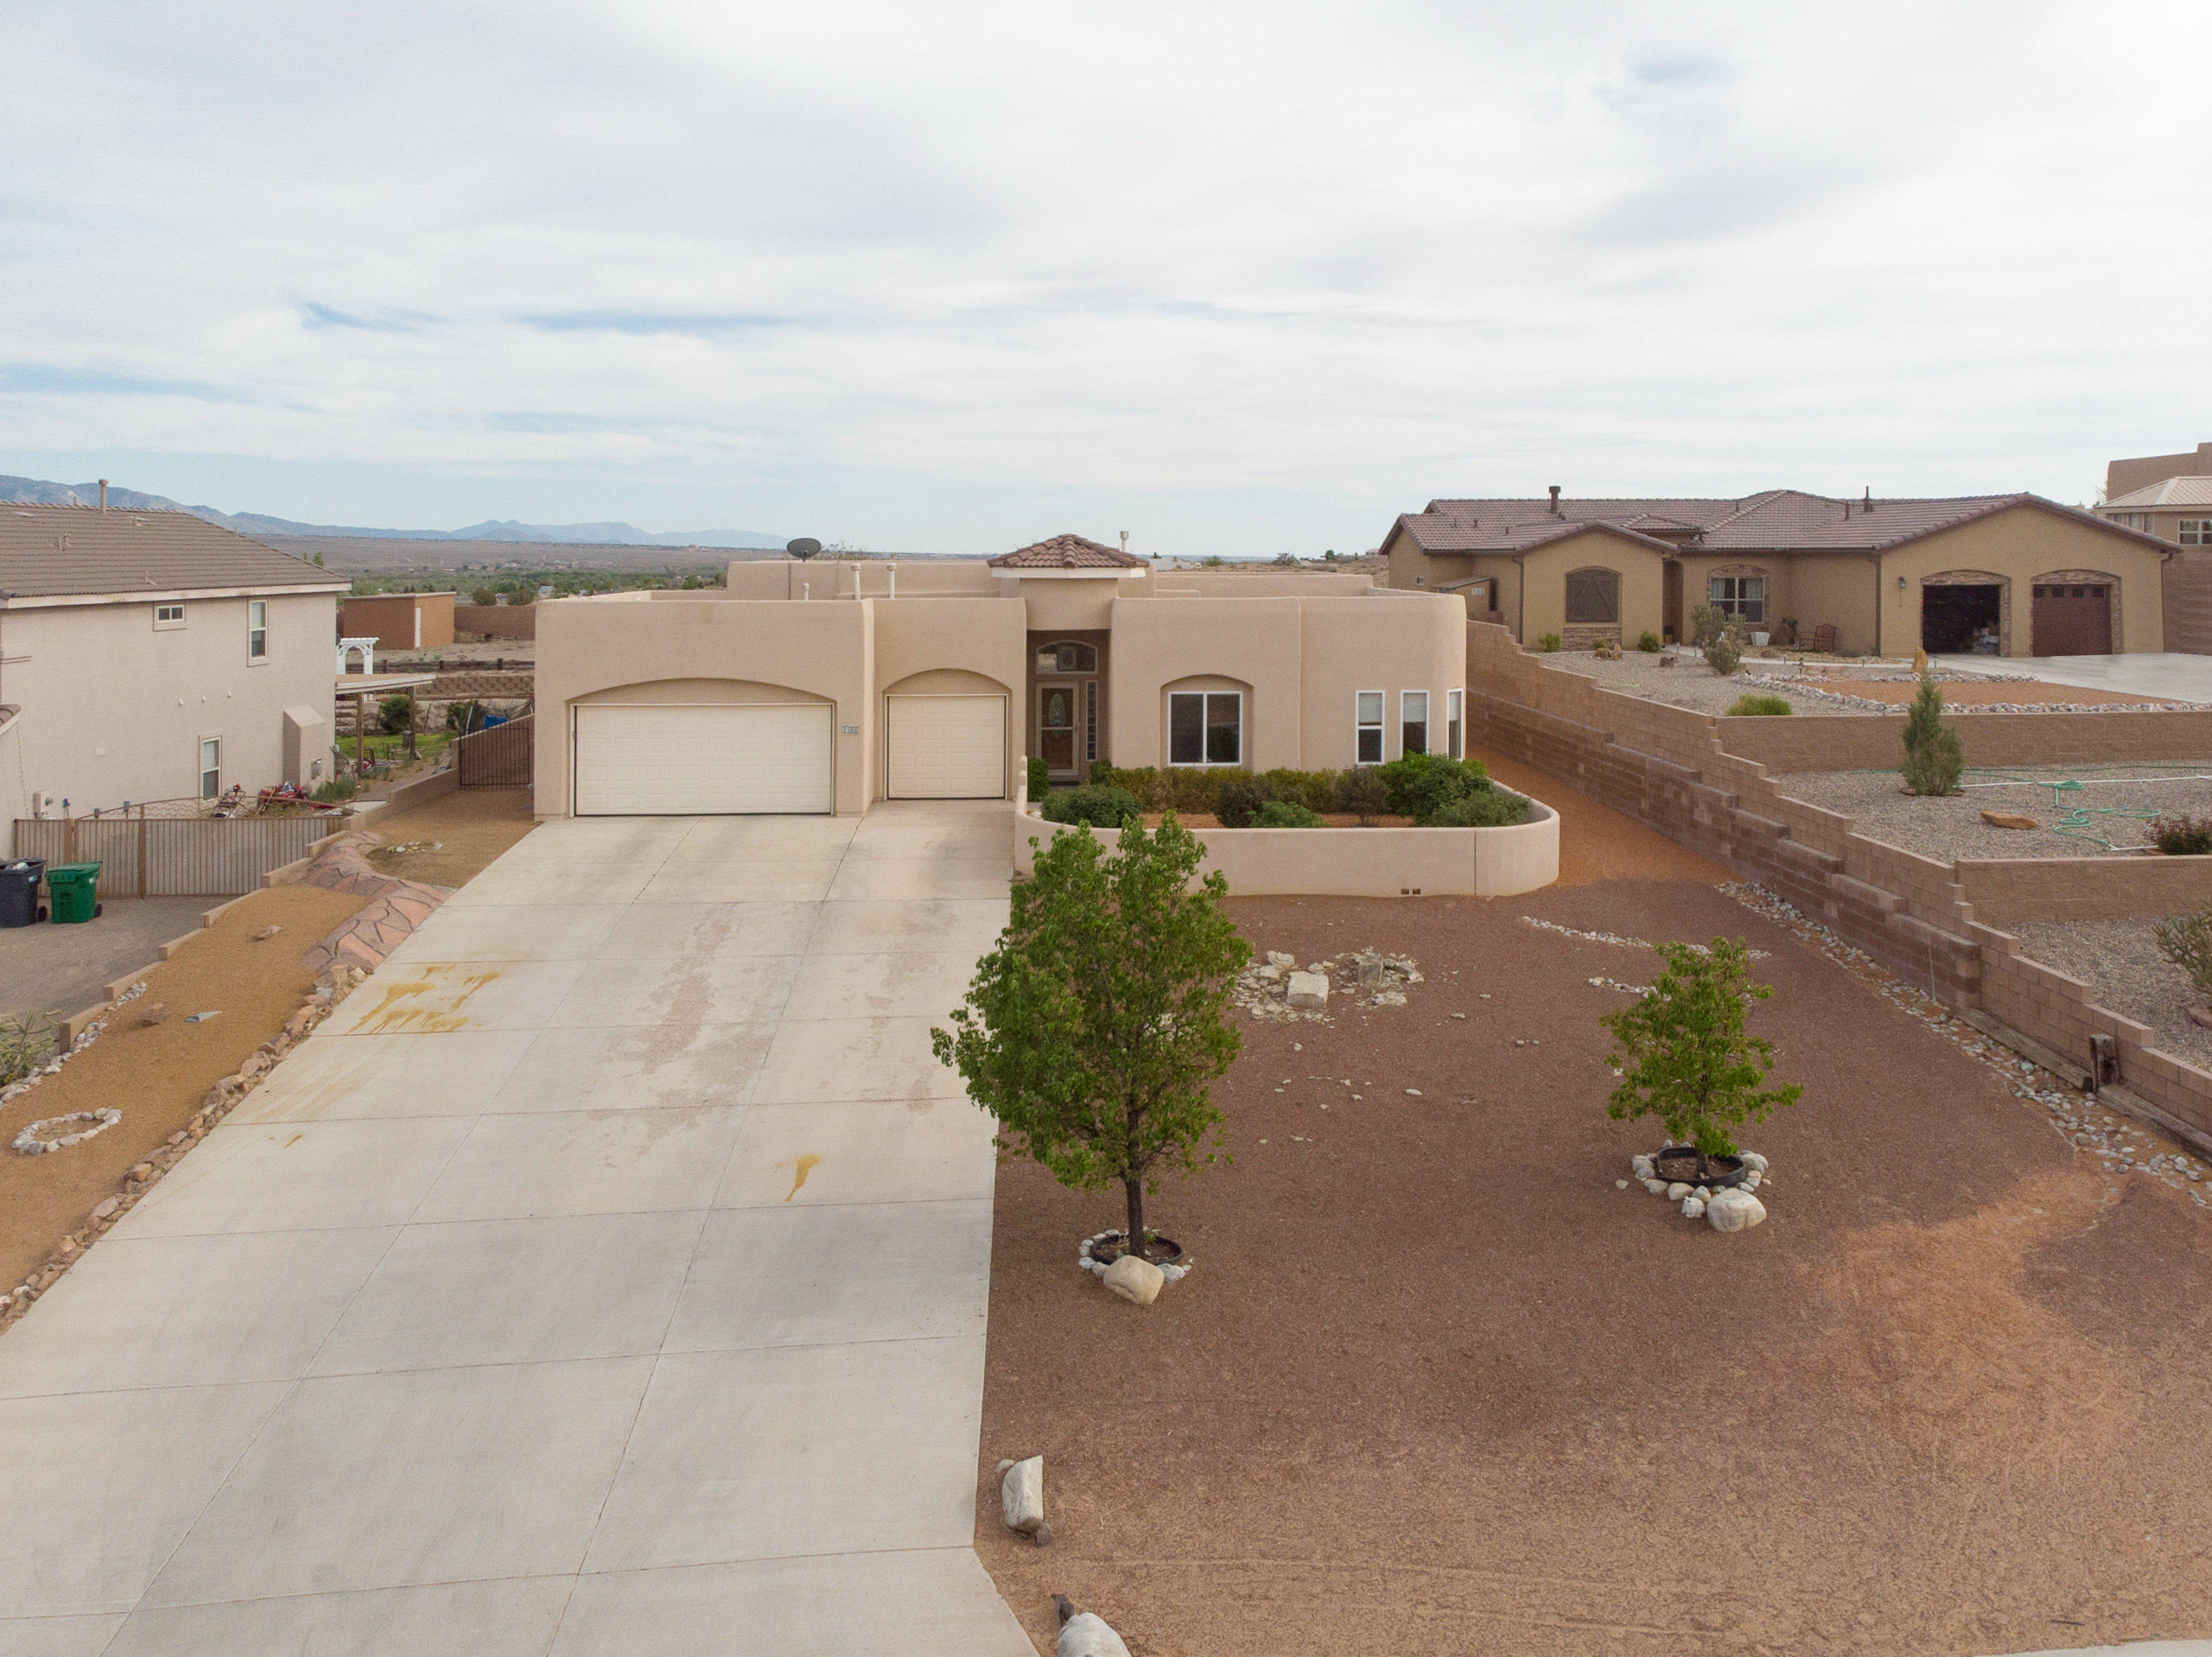 You will love this impeccably maintained home on .5 acre with gorgeous mountain views! The living area features vigas, a kiva fireplace and is open to the kitchen and breakfast nook. The extra large 4th bedroom can be used as a den or game room. You will love the covered patio and views of the Sandias and city lights! Past the retaining wall in the backyard is more space left to your imagination. Solar was installed a year ago, is being financed and will be paid off at closing.